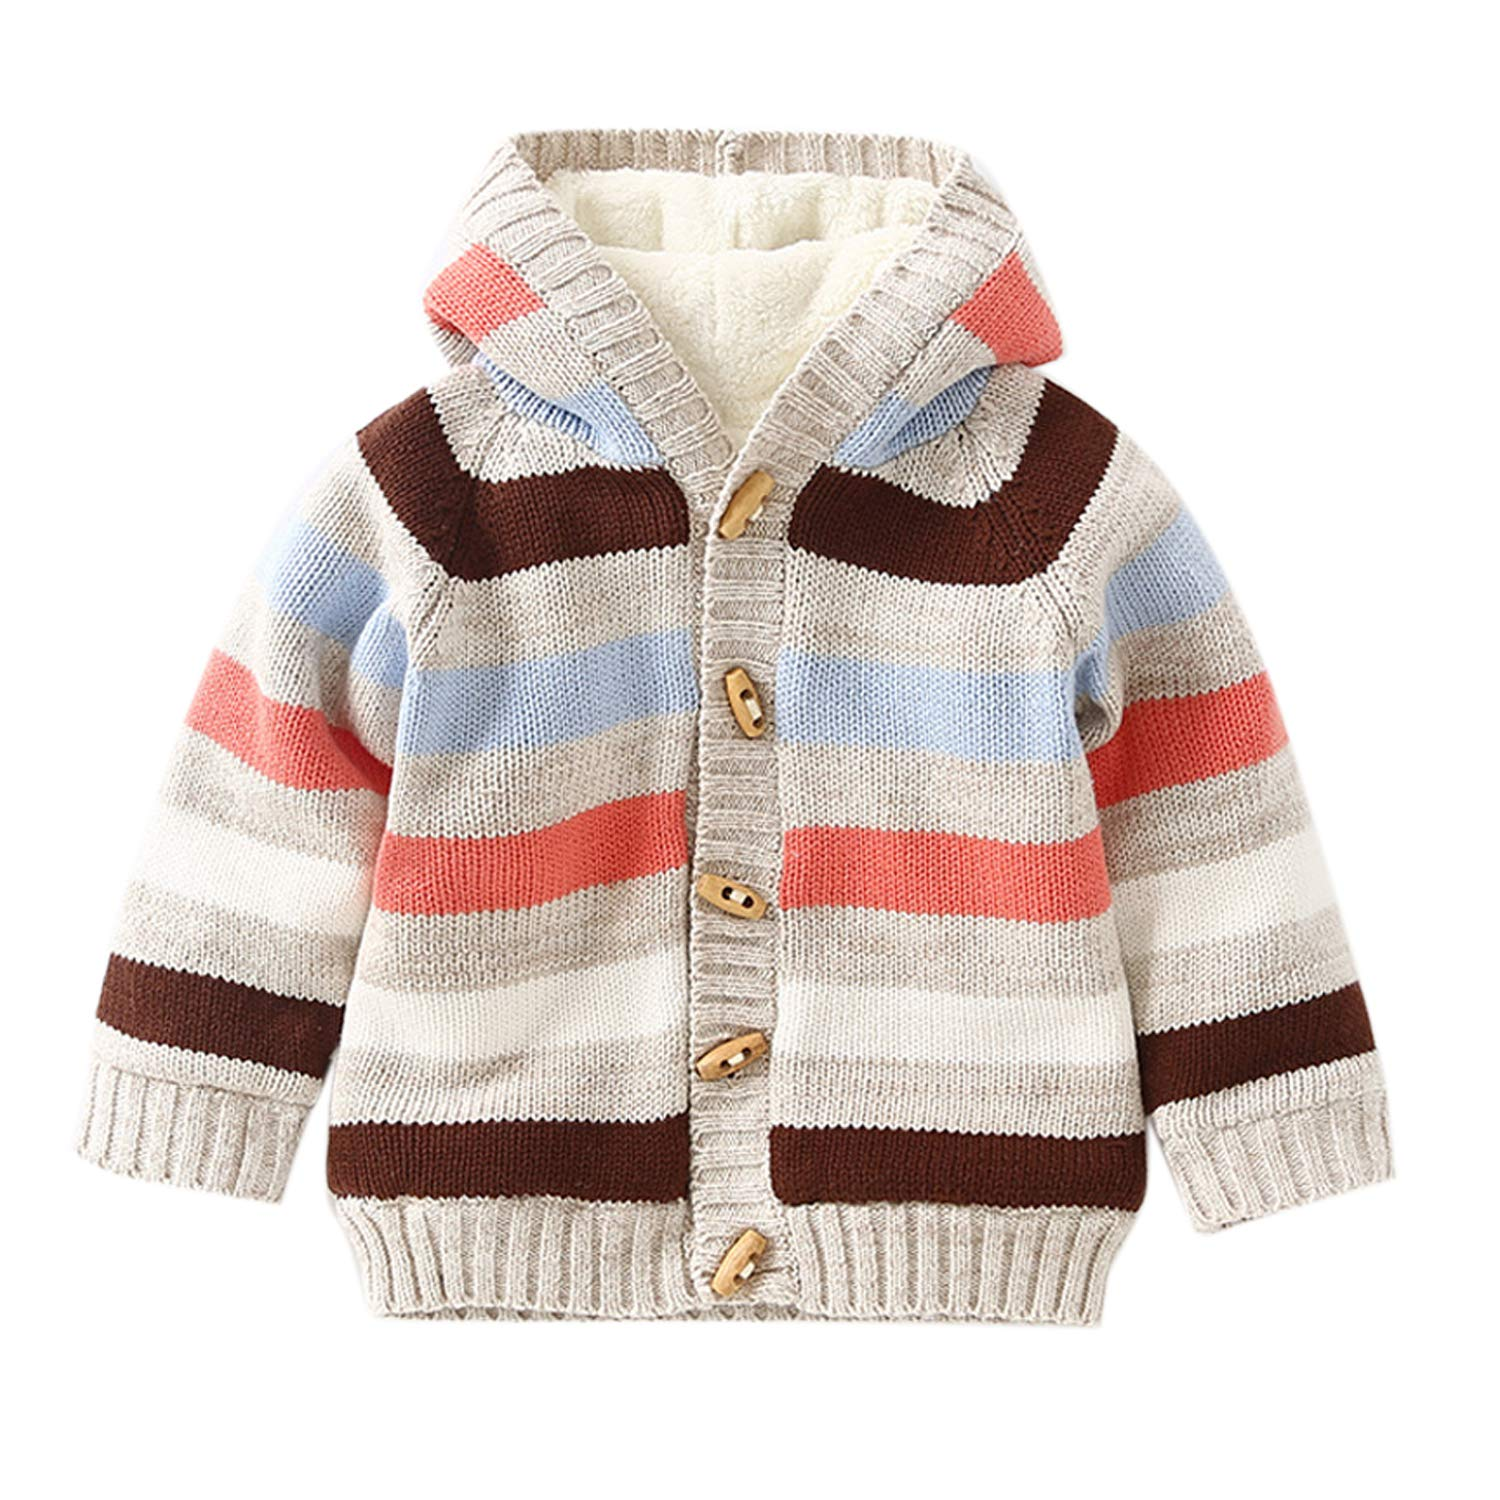 De feuilles Baby Girls Boys Hooded Chunky Knit Cardigan Fleece Warm Striped Sweaters Outwear EB5140